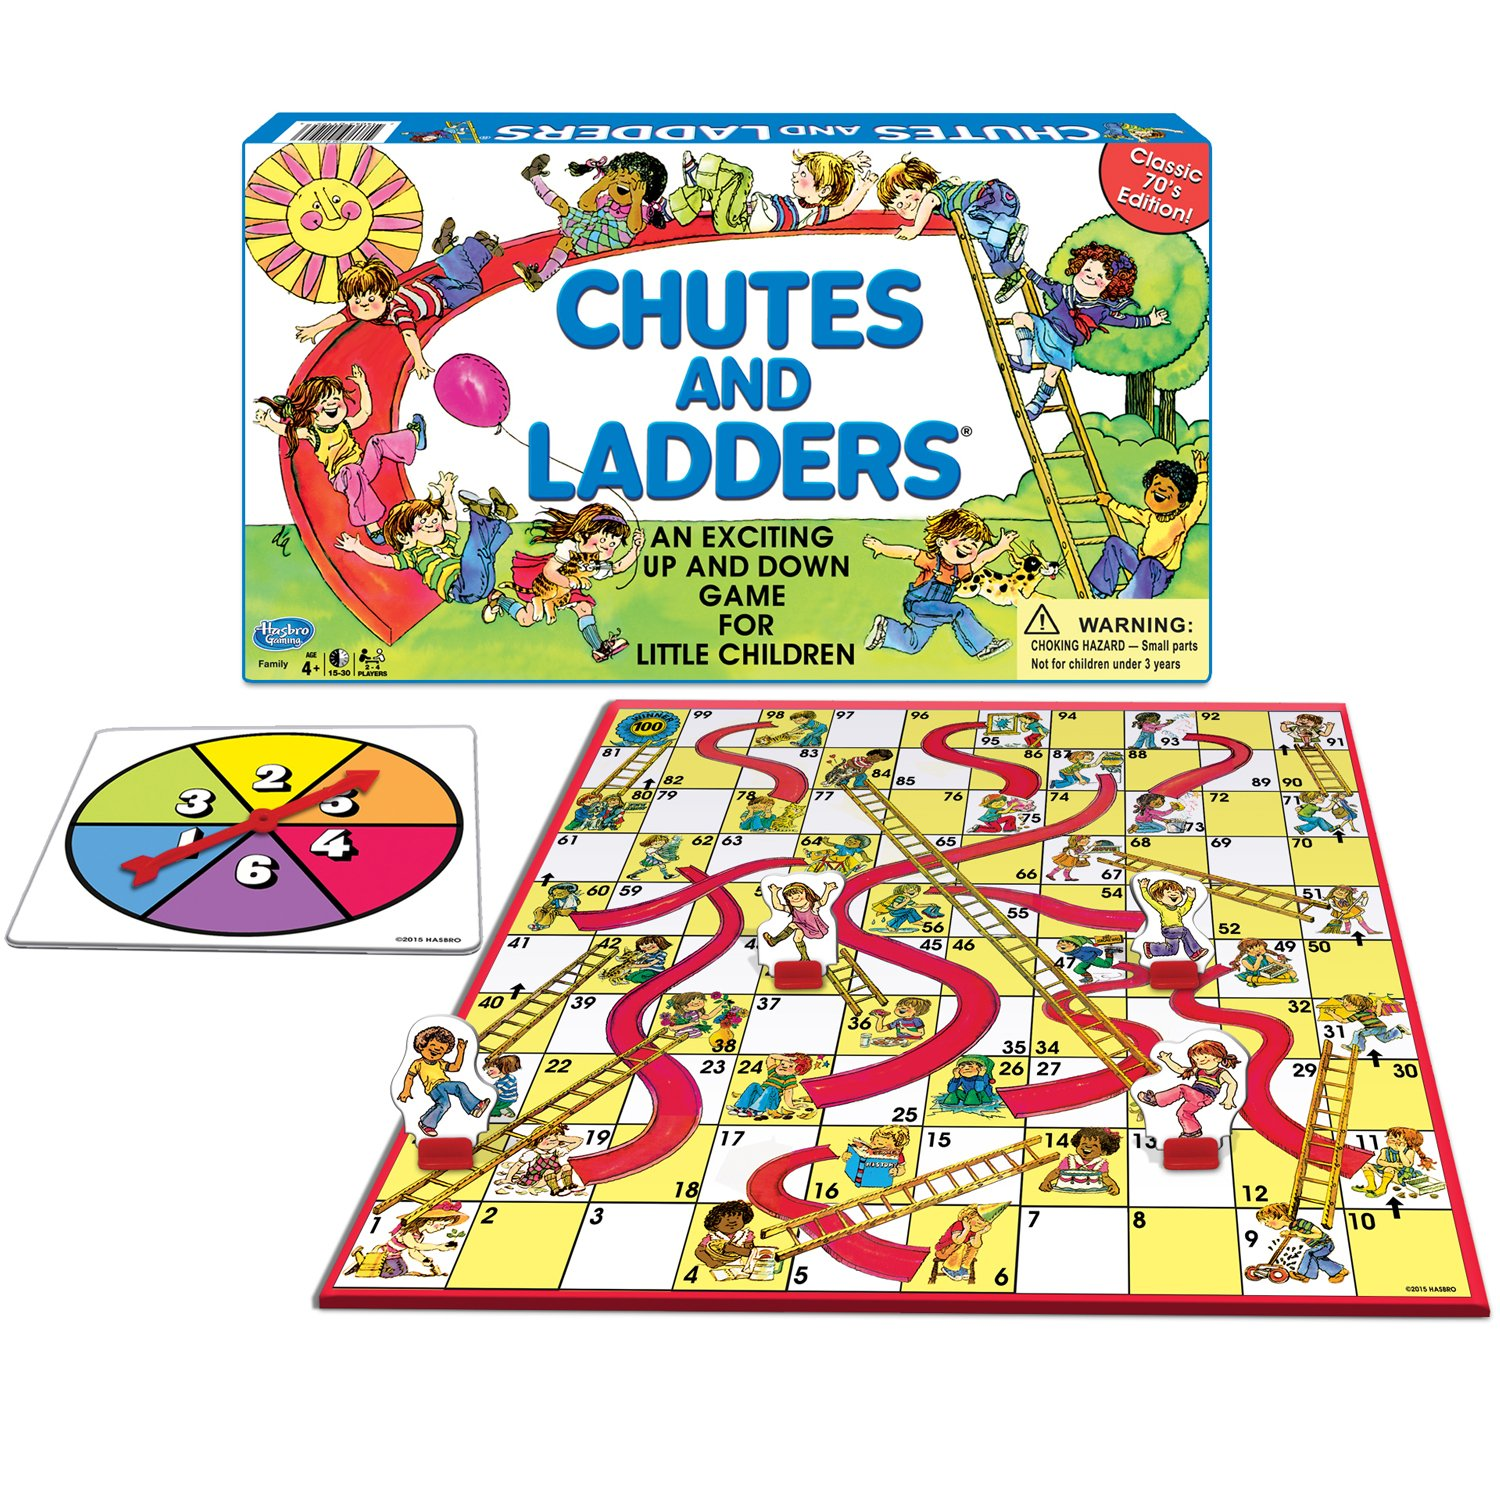 graphic about Chutes and Ladders Board Printable known as HASBRO GAMING:Chutes and Ladders Board Video game